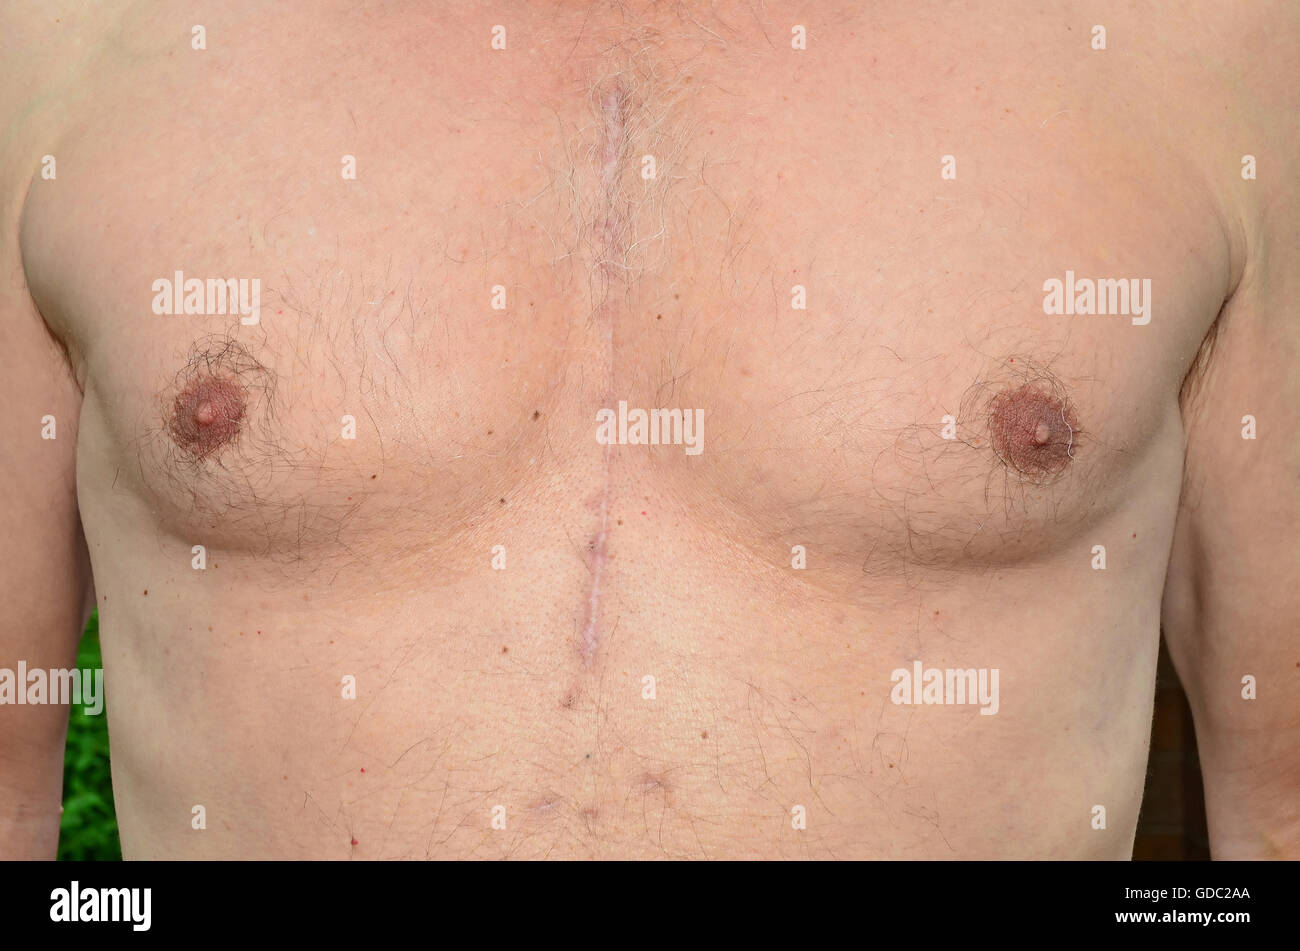 Chest of a man who has undergone open heart surgery 7 months previously,showing how the scars have healed. - Stock Image